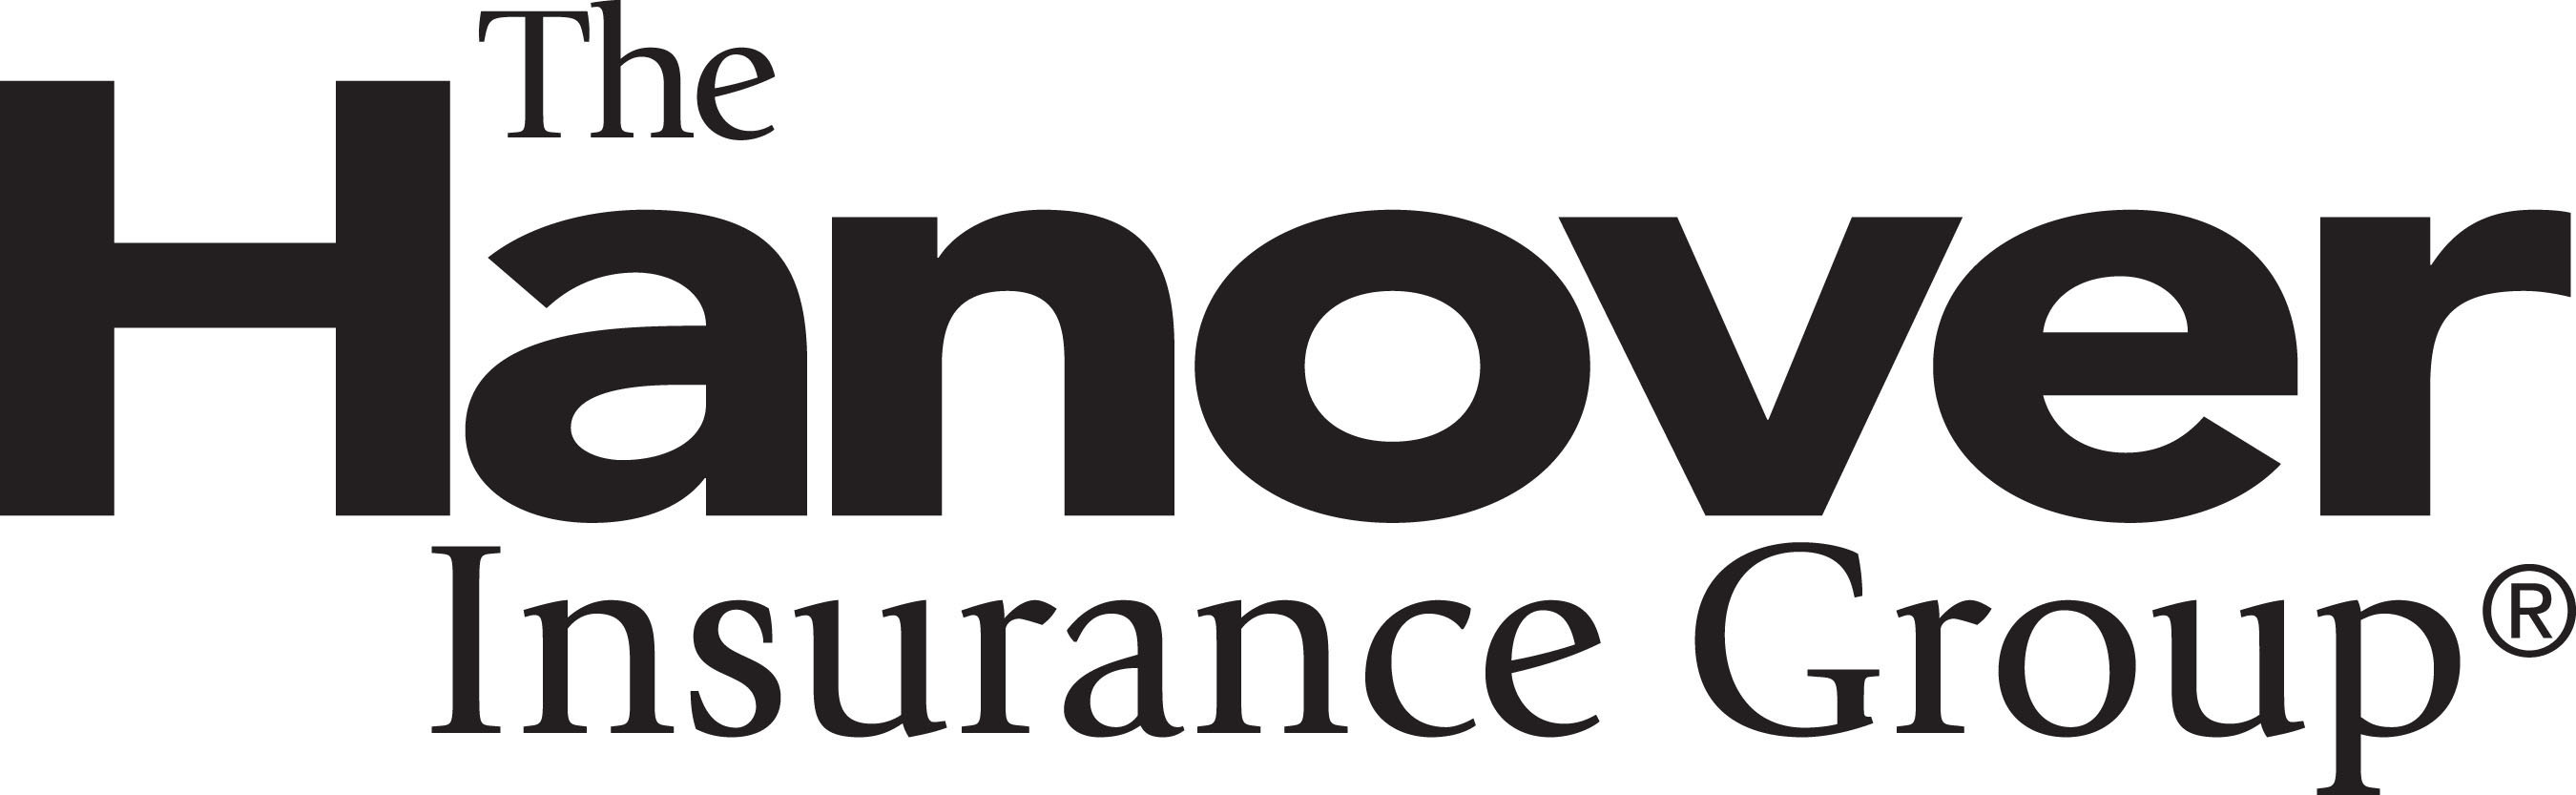 The Hanover Insurance Group Appoints John C Roche Chief